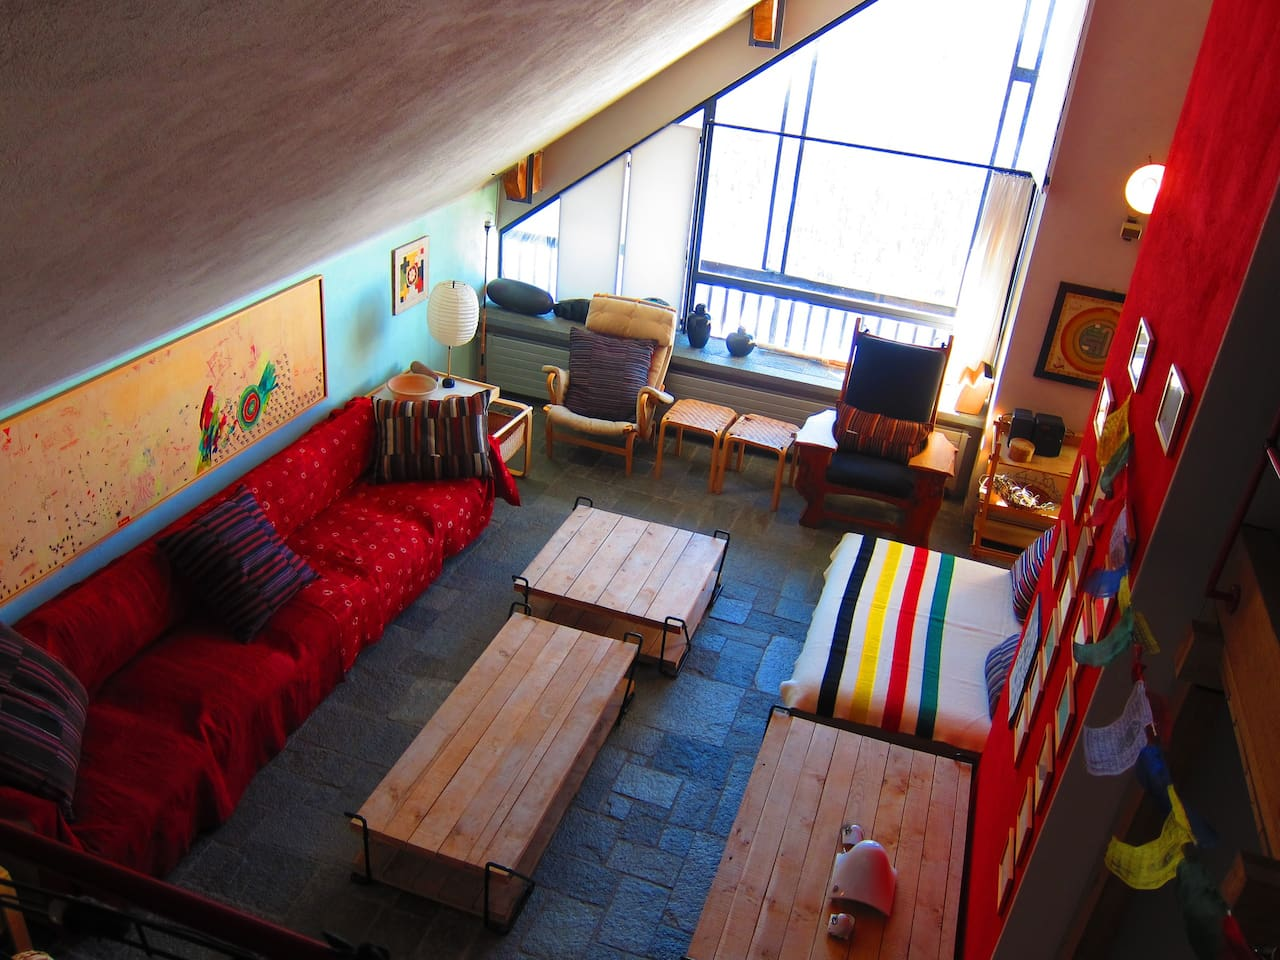 LIVING ROOM VIEW FROM THE MEZZANINE